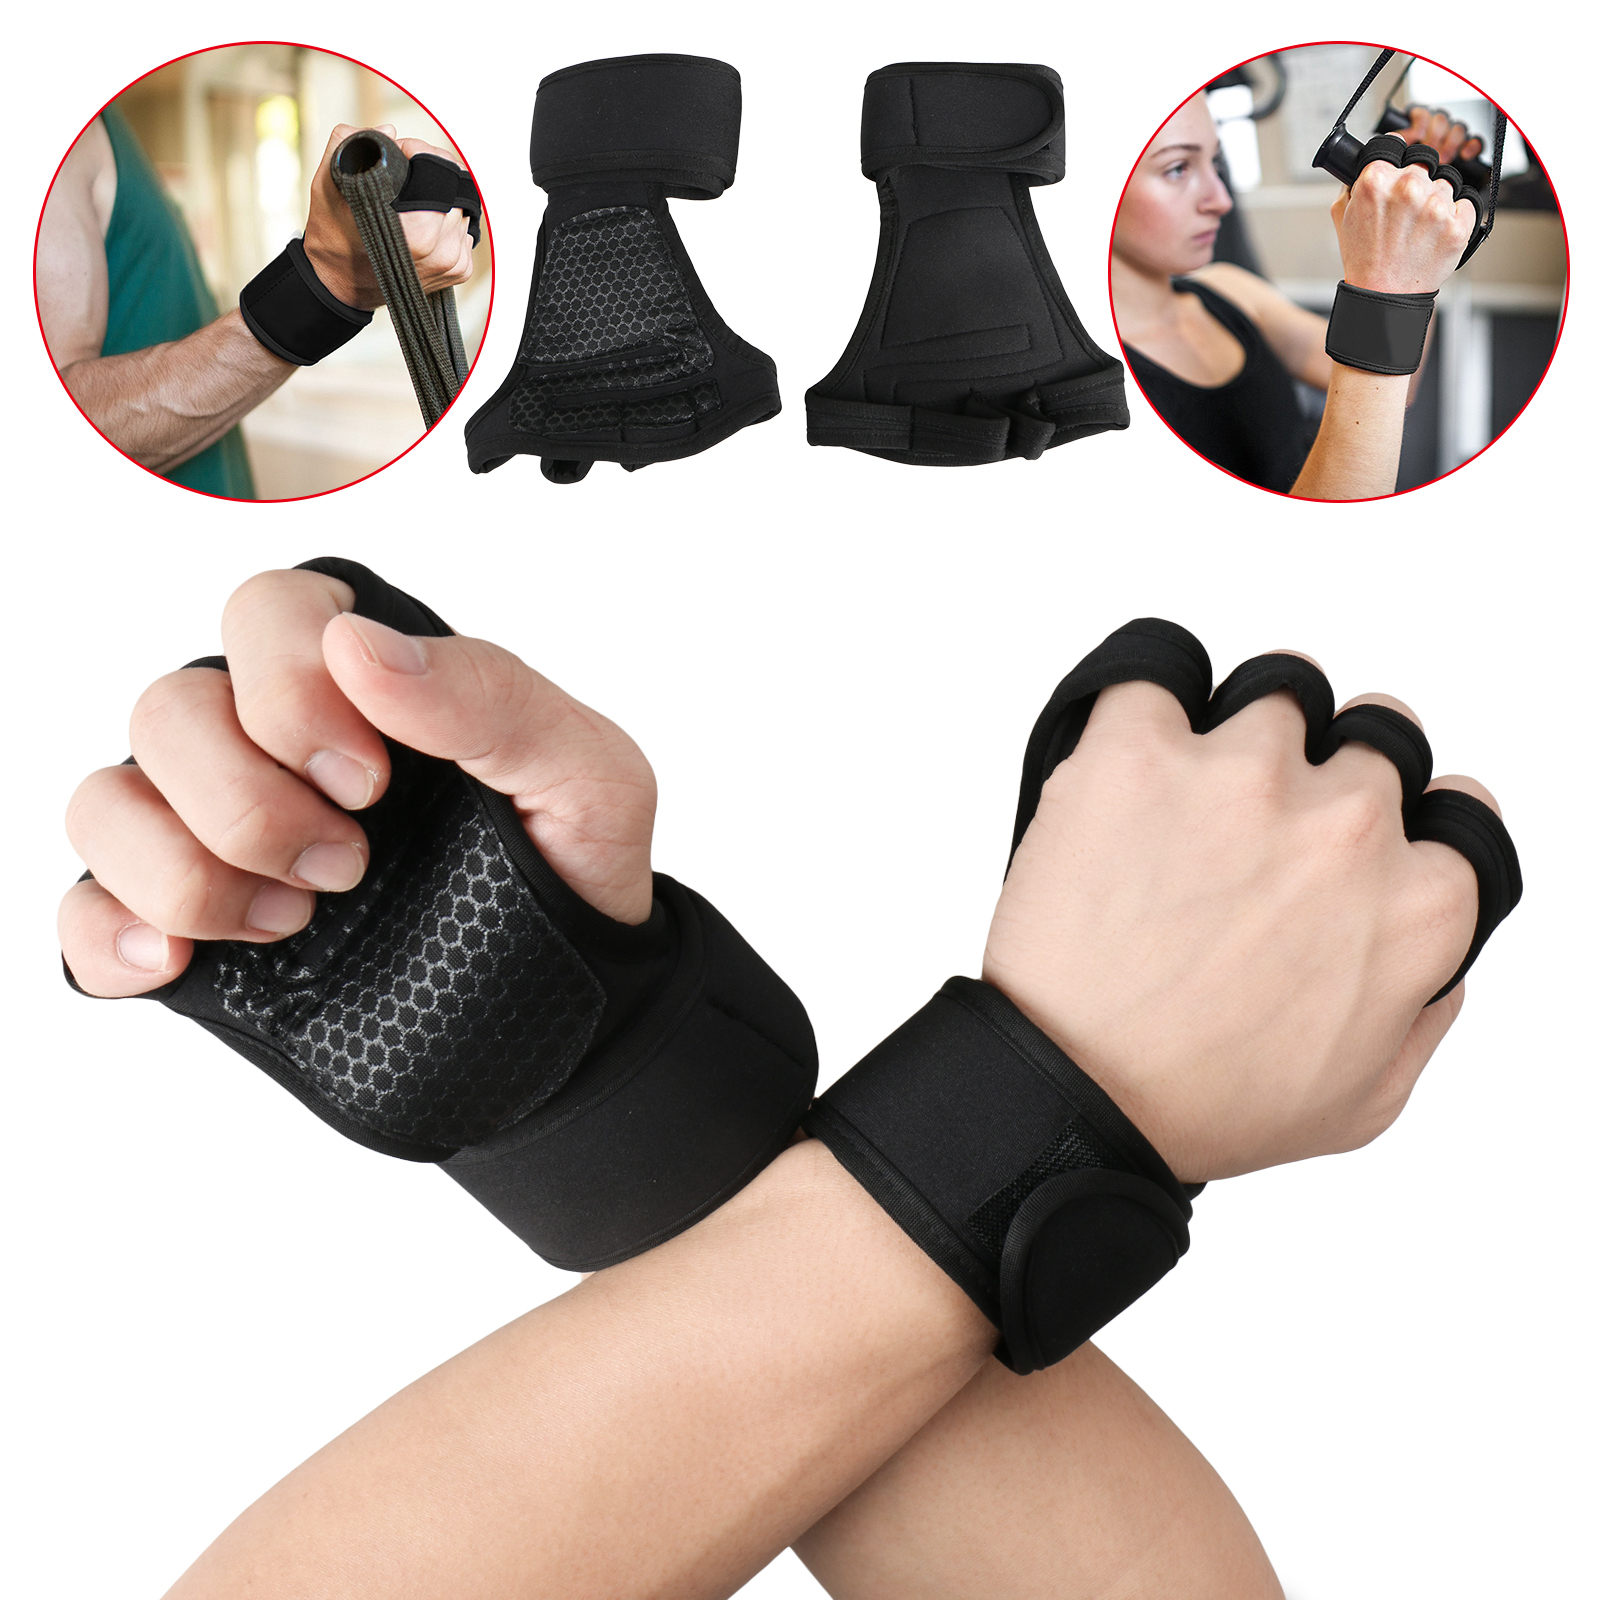 Crossfit Weight Lifting Gloves with Wrist Support for Gym Workout, Cross Training, Fitness, WOD, Pull Ups &... by